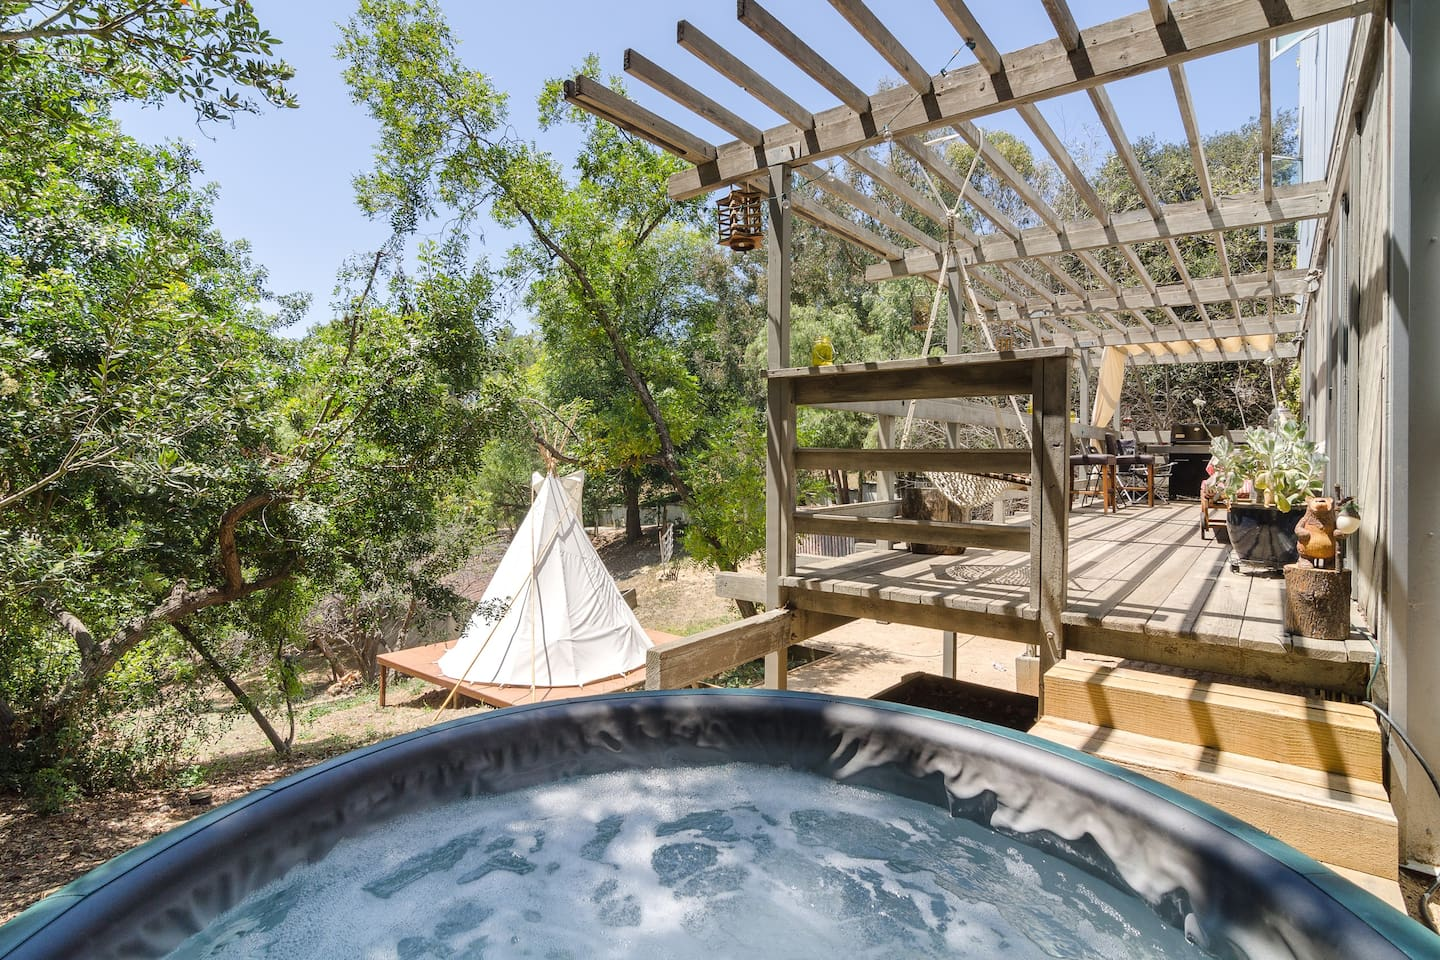 beach canyon authentic tipi glampin tipis for rent in topanga